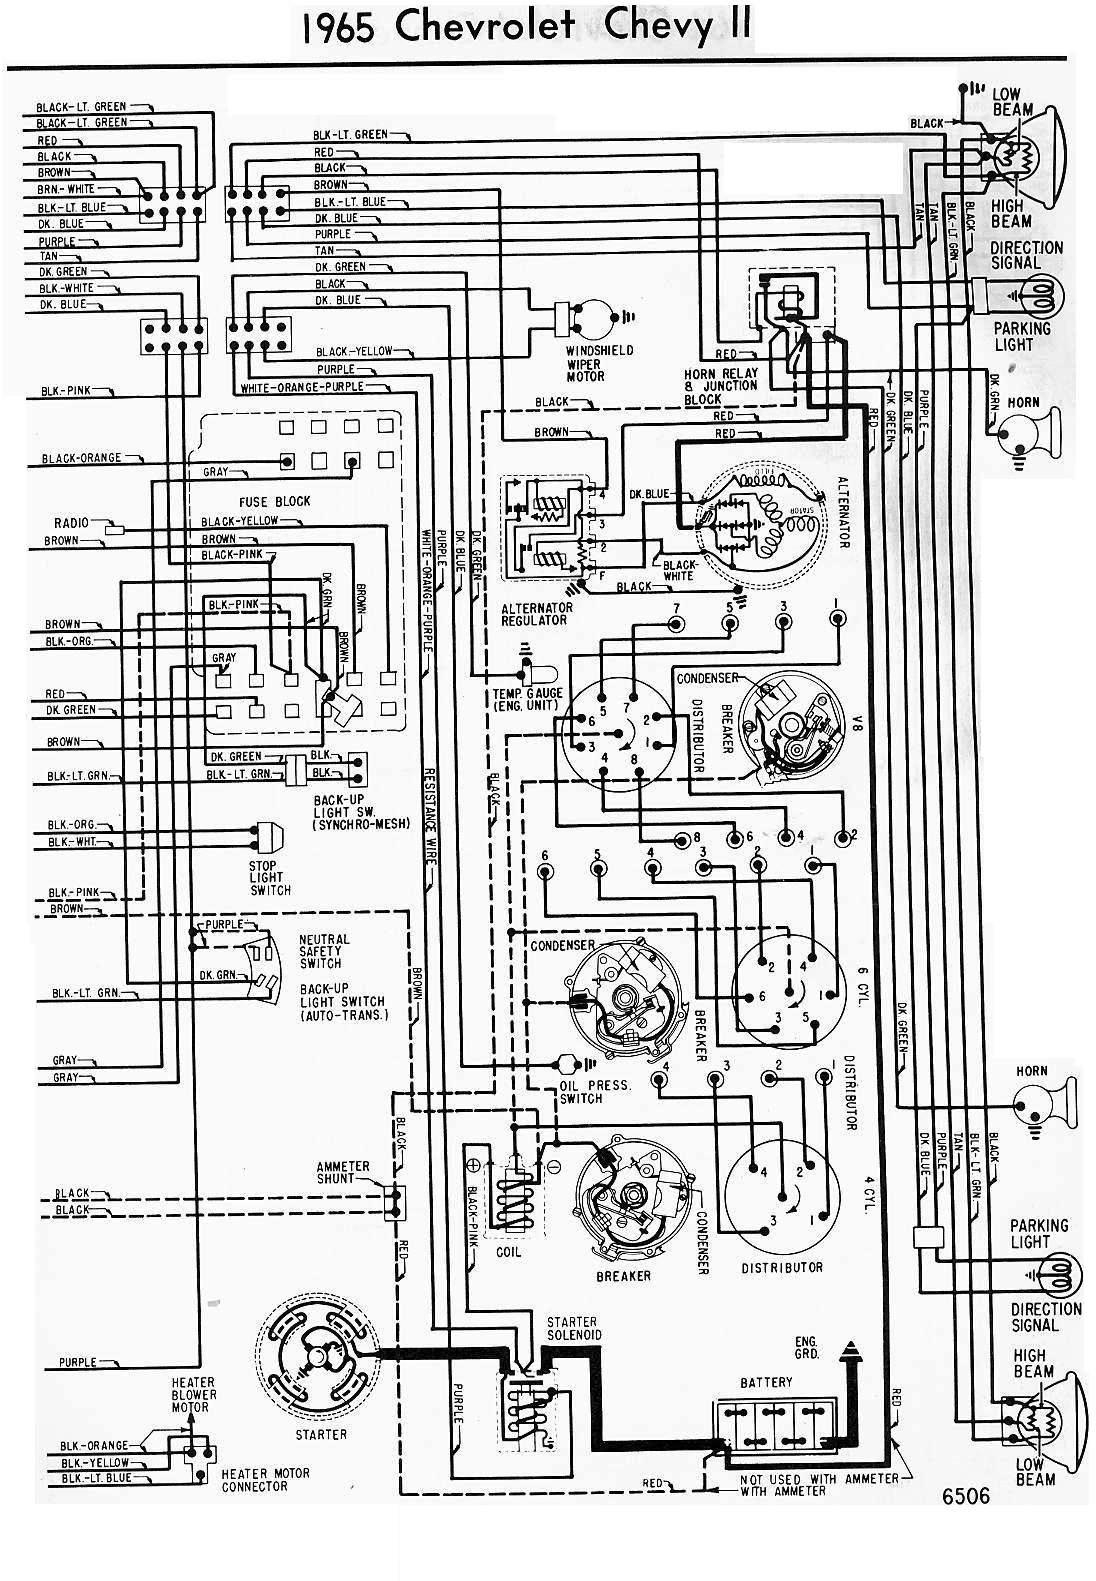 Hqdefault likewise Windshield Wiper Motor Wiring Diagram Fresh Shore Power Wiring Diagram Forester Rv Ac Wiring Diagram Data Photos Of Windshield Wiper Motor Wiring Diagram additionally Header Ford F Truck likewise D Duraspark Wiring Question Do Red White Wires Module Duraspark additionally F D Bf C E B Bc Cdc Ad C. on 56 ford f100 wiring diagram